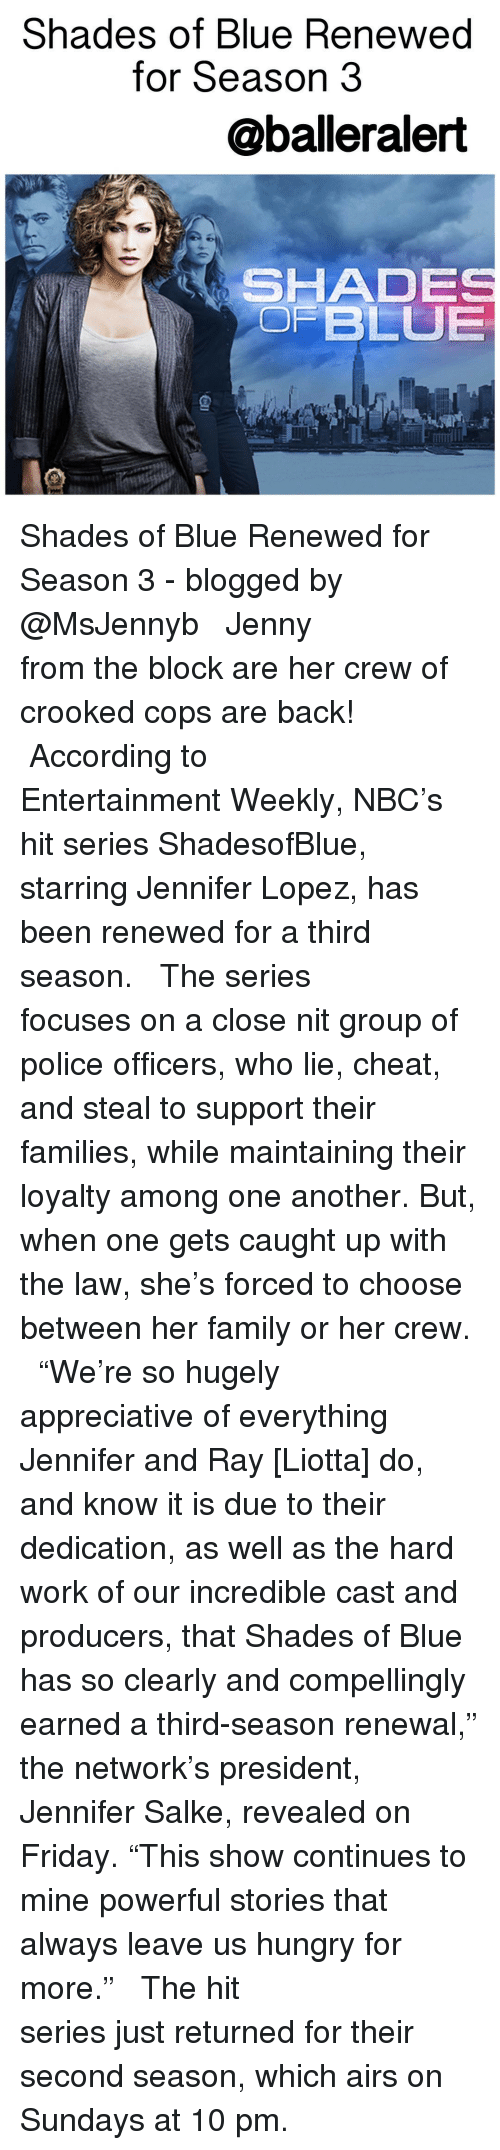 """Memes, Ray Liotta, and 🤖: Shades of Blue Rene  for Season 3  @baller alert  i SHADE  OF BLUE Shades of Blue Renewed for Season 3 - blogged by @MsJennyb ⠀⠀⠀⠀⠀⠀⠀⠀⠀ ⠀⠀⠀⠀⠀⠀⠀⠀⠀ Jenny from the block are her crew of crooked cops are back! ⠀⠀⠀⠀⠀⠀⠀⠀⠀ ⠀⠀⠀⠀⠀⠀⠀⠀⠀ According to Entertainment Weekly, NBC's hit series ShadesofBlue, starring Jennifer Lopez, has been renewed for a third season. ⠀⠀⠀⠀⠀⠀⠀⠀⠀ ⠀⠀⠀⠀⠀⠀⠀⠀⠀ The series focuses on a close nit group of police officers, who lie, cheat, and steal to support their families, while maintaining their loyalty among one another. But, when one gets caught up with the law, she's forced to choose between her family or her crew. ⠀⠀⠀⠀⠀⠀⠀⠀⠀ ⠀⠀⠀⠀⠀⠀⠀⠀⠀ """"We're so hugely appreciative of everything Jennifer and Ray [Liotta] do, and know it is due to their dedication, as well as the hard work of our incredible cast and producers, that Shades of Blue has so clearly and compellingly earned a third-season renewal,"""" the network's president, Jennifer Salke, revealed on Friday. """"This show continues to mine powerful stories that always leave us hungry for more."""" ⠀⠀⠀⠀⠀⠀⠀⠀⠀ ⠀⠀⠀⠀⠀⠀⠀⠀⠀ The hit series just returned for their second season, which airs on Sundays at 10 pm."""